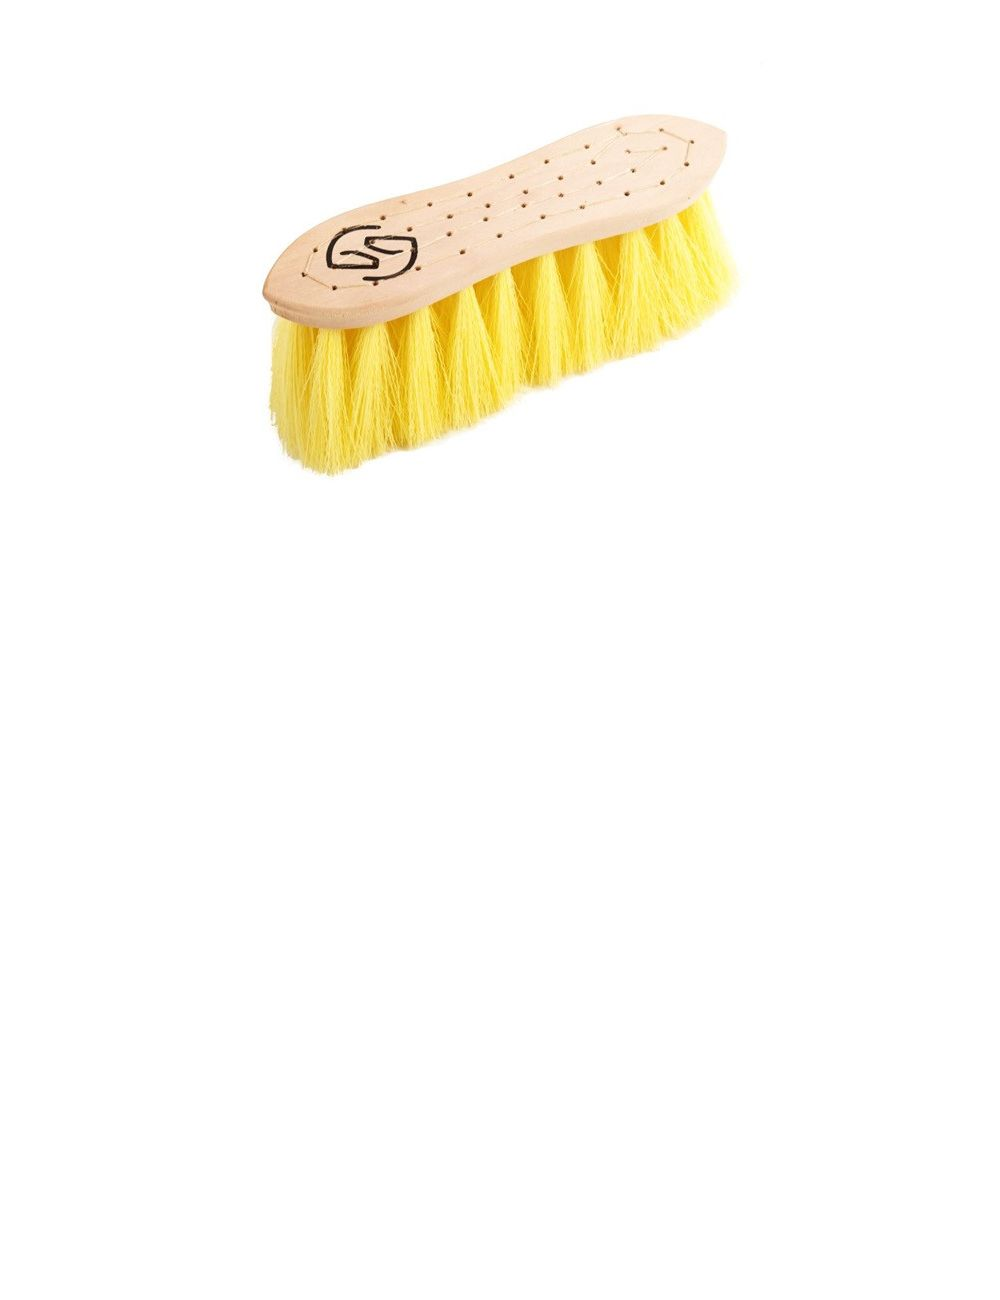 One Equestrian brush soft - 1